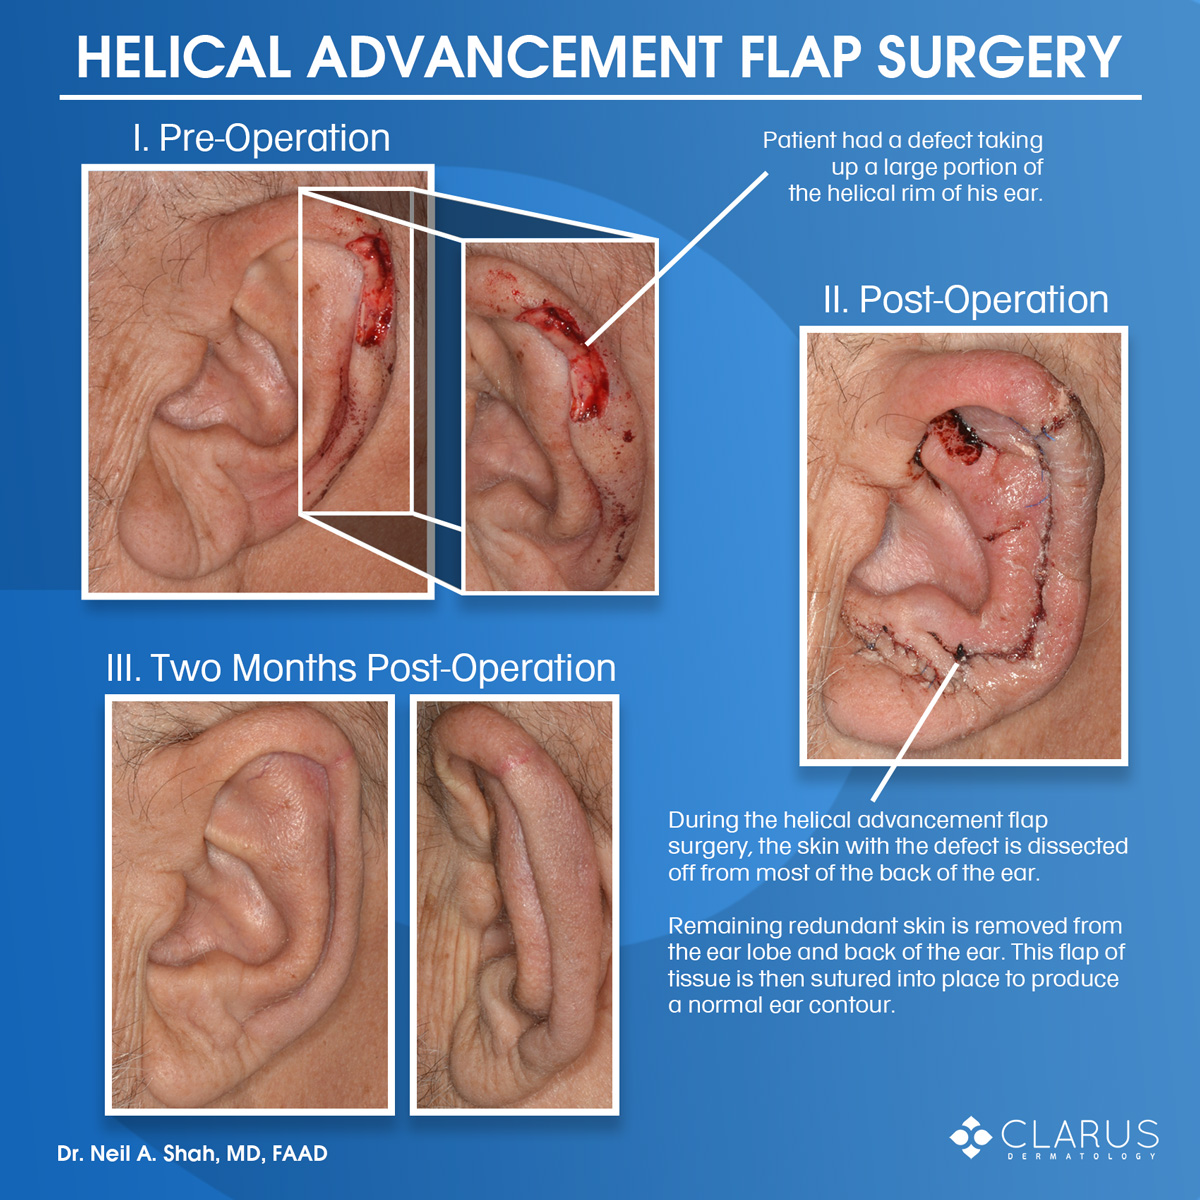 We recently saw a patient here at Clarus Dermatology who needed Mohs surgery to clear a skin cancer on the ear (helical rim). The resulting defect was reasonably broad and fairly deep. In order to restore a preoperative ear shape a helical advancement flap was undertaken and performed by Dr. Neil Shah.